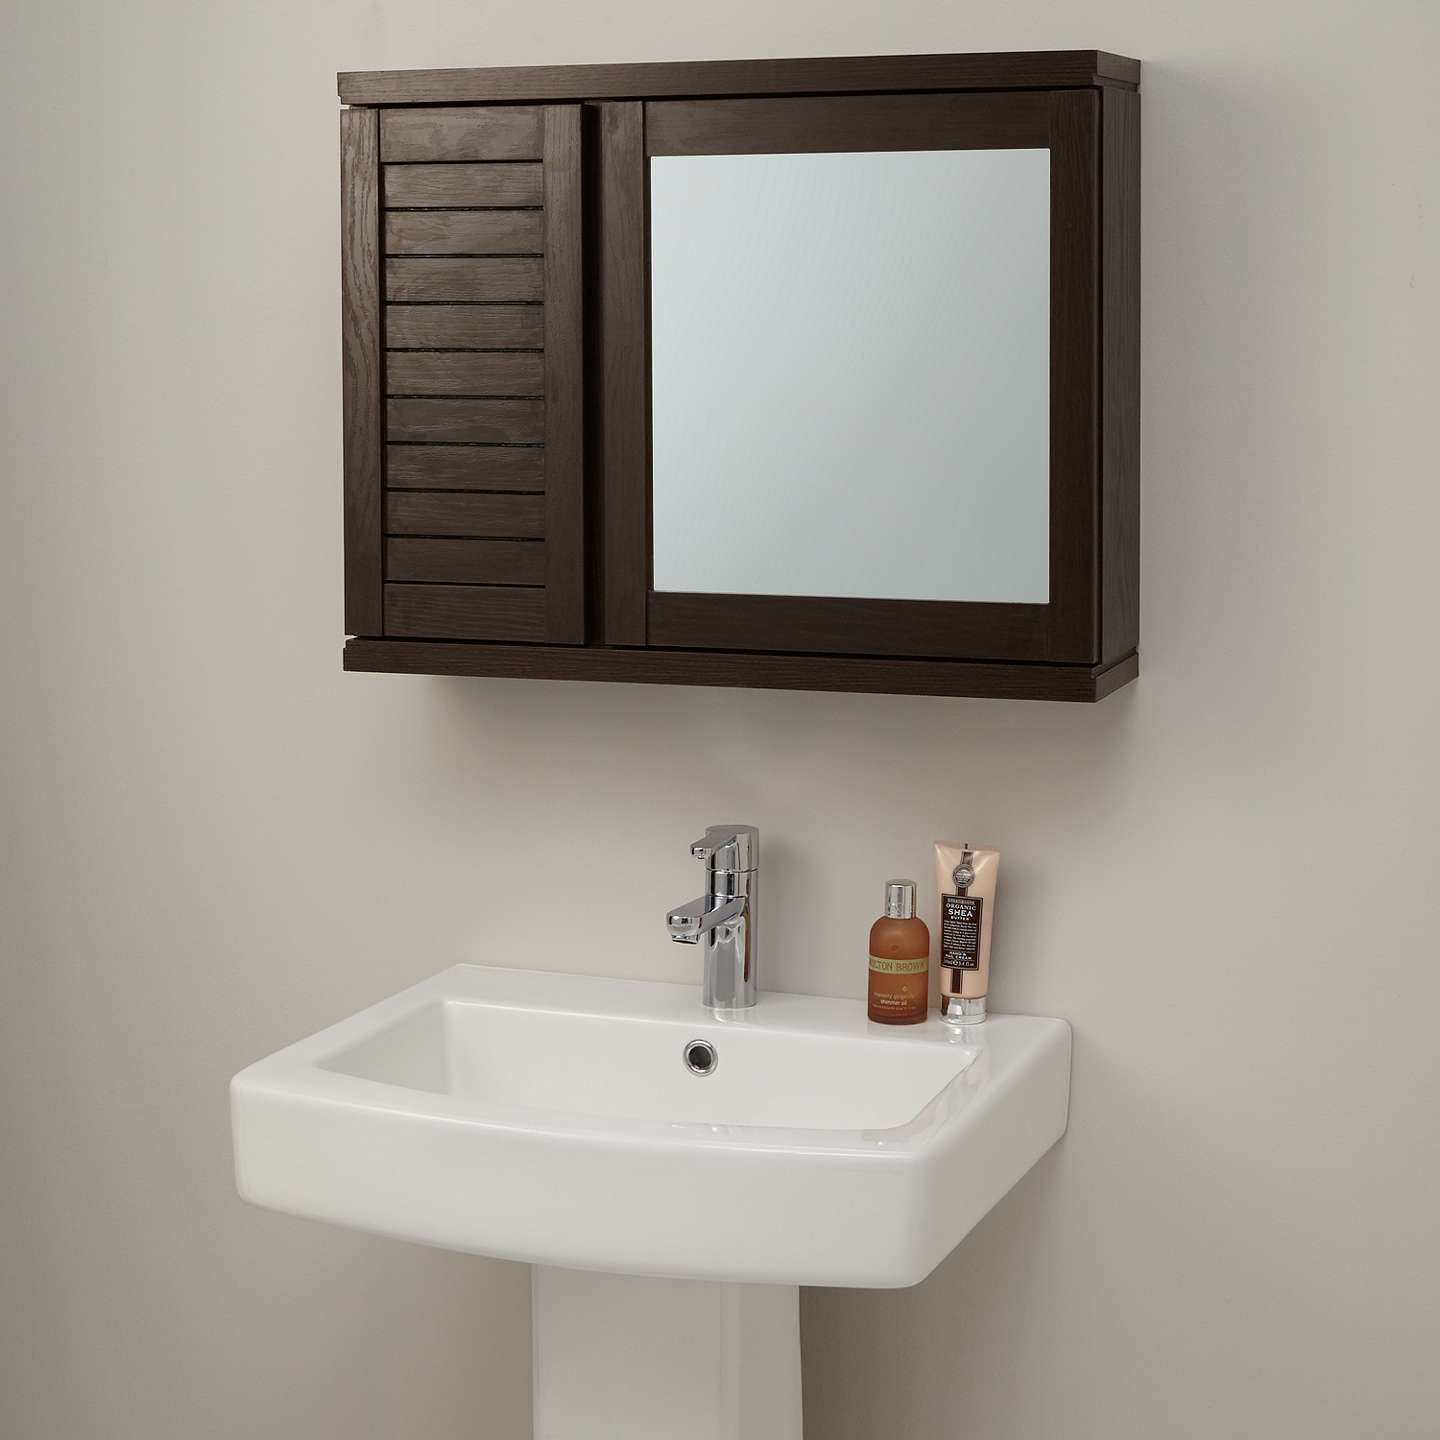 john lewis bathroom cabinets lewis bali mirrored wall cabinet at lewis 18030